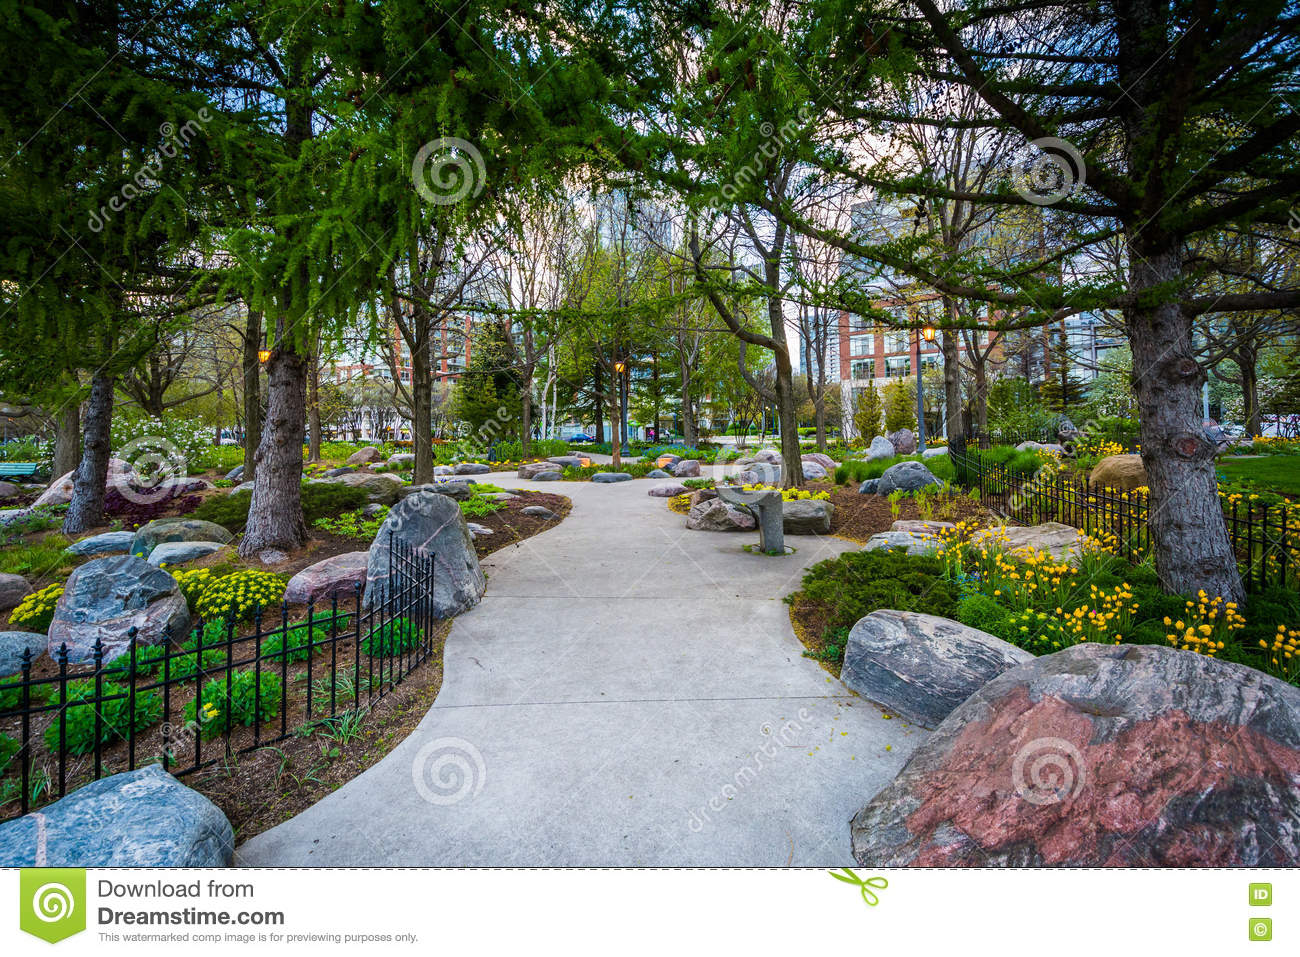 Trees And Gardens Along A Walkway At The Toronto Music Garden, A